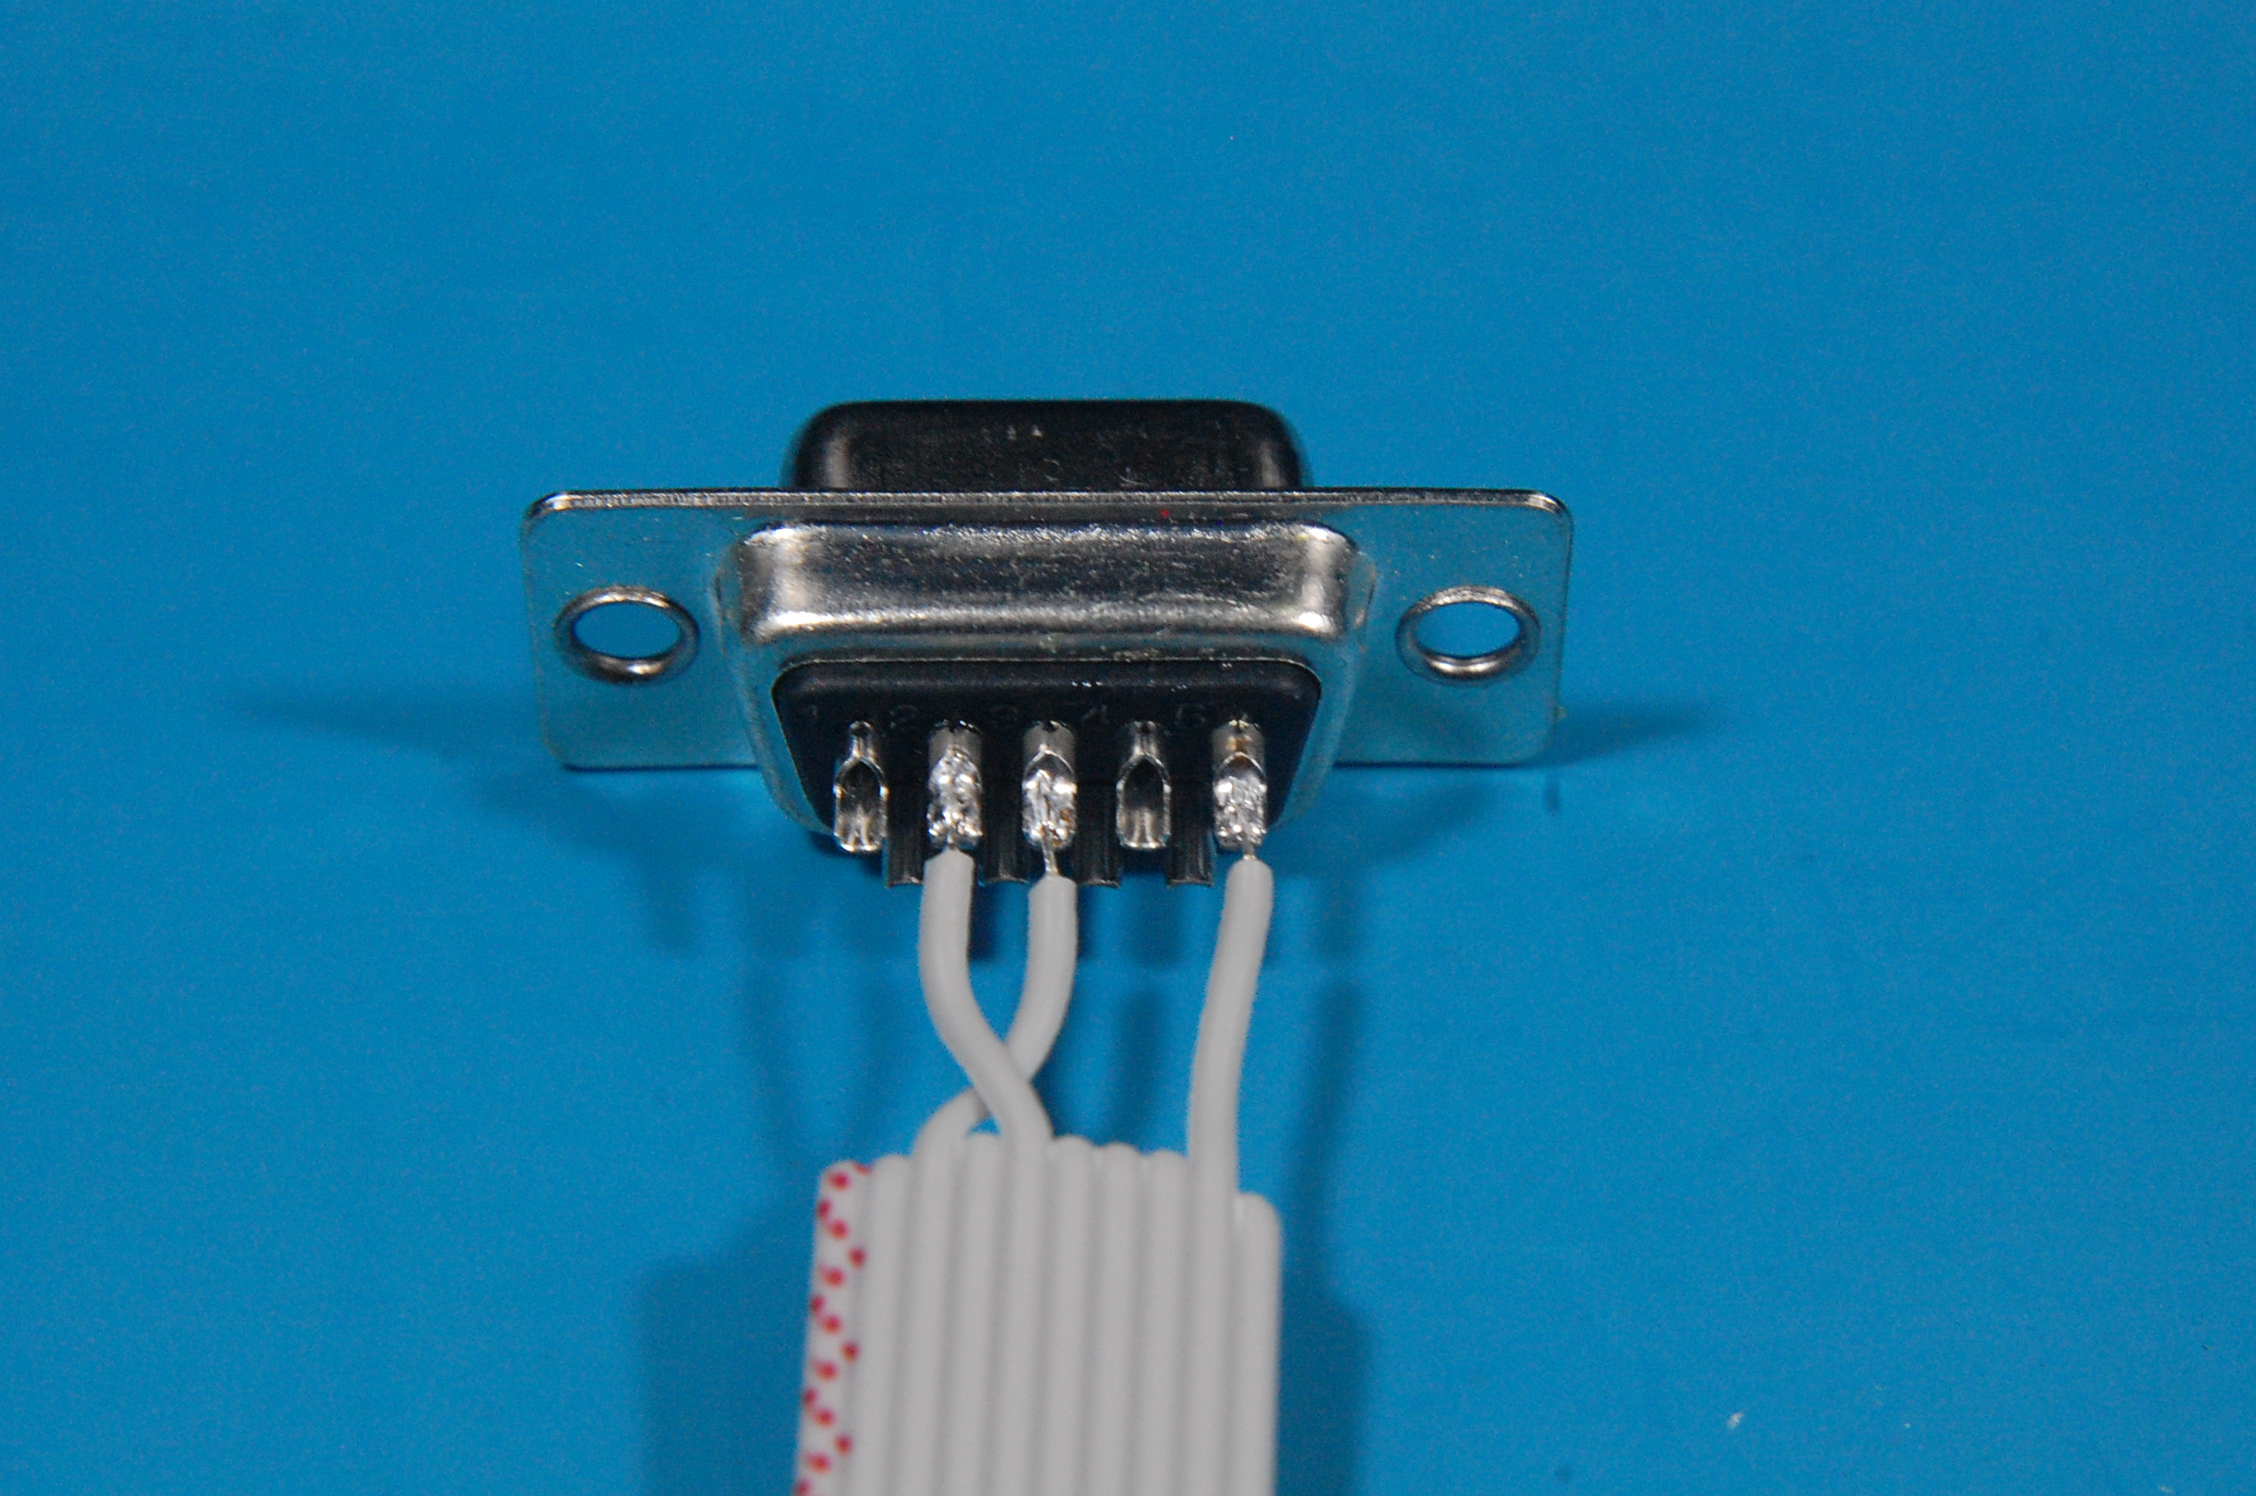 Ribbon cable soldered to the DB9 connector